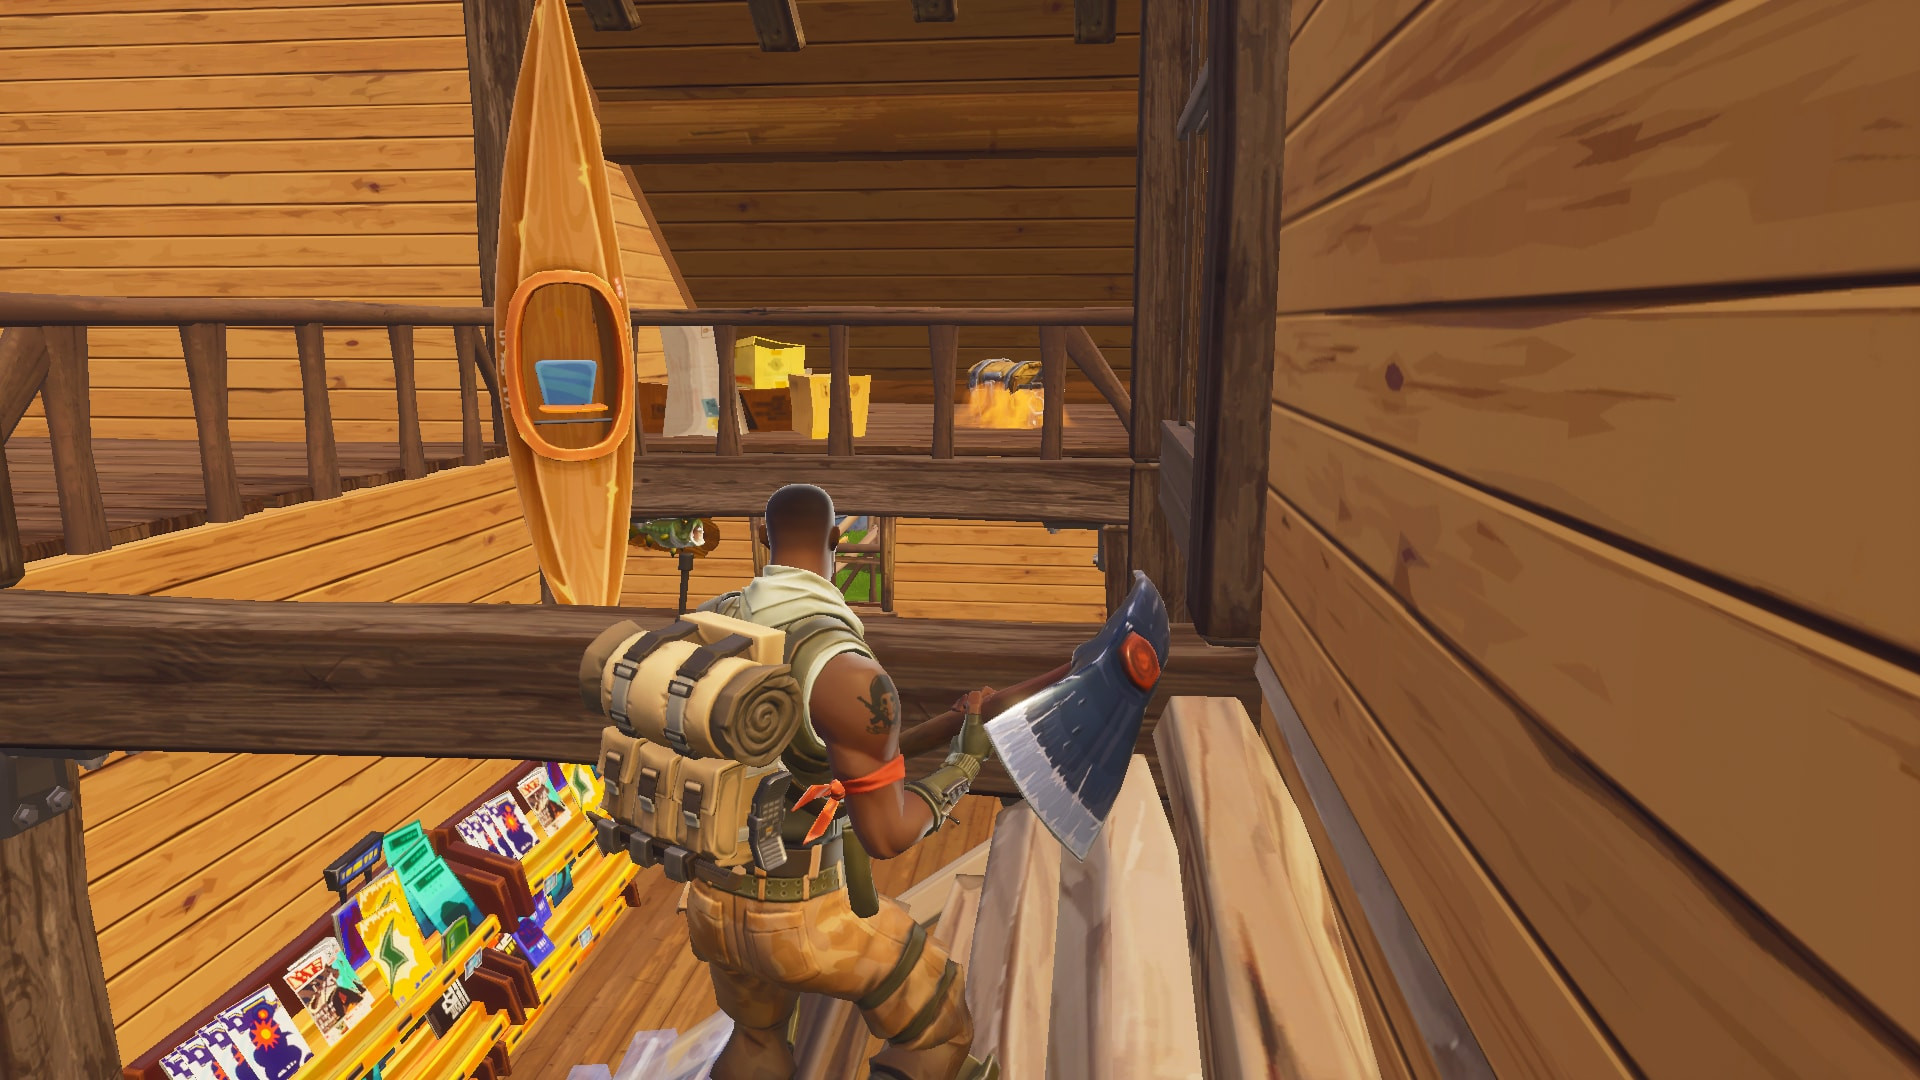 Chest Location 6 in Lonely Lodge | Fortnite - zilliongamer your game gide